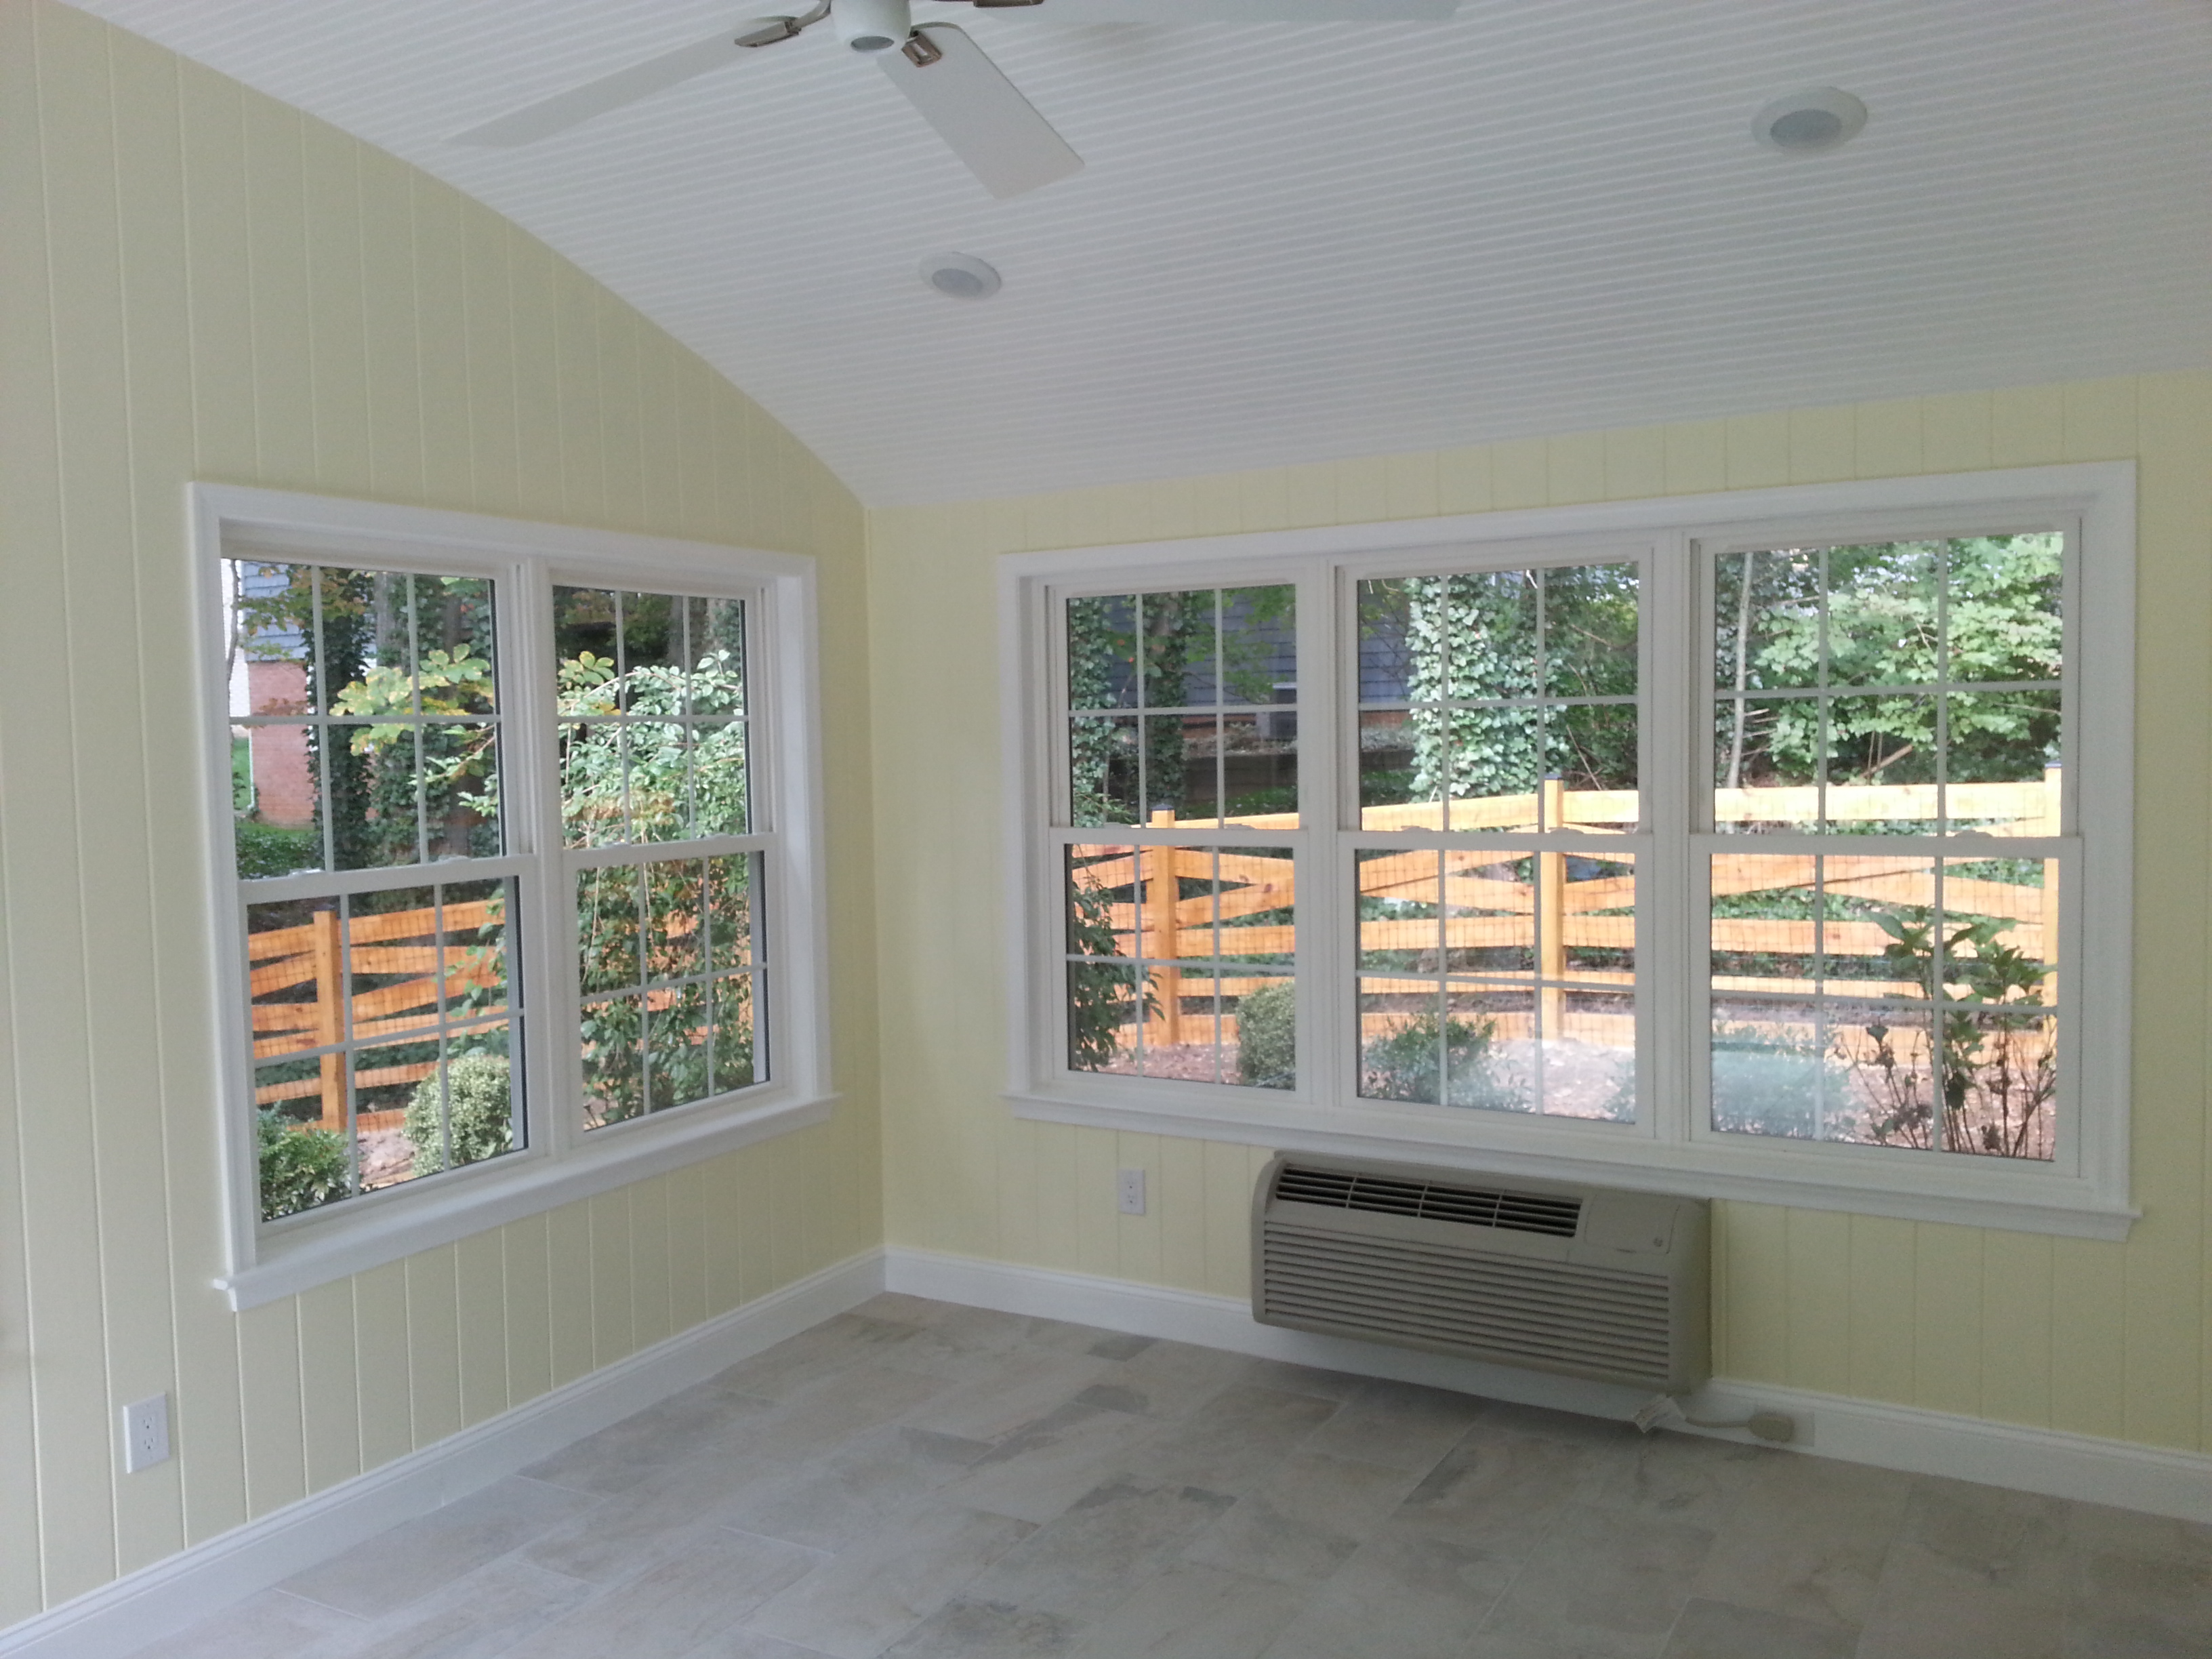 SUNROOM WITH CUSTOM CURVED CEILING